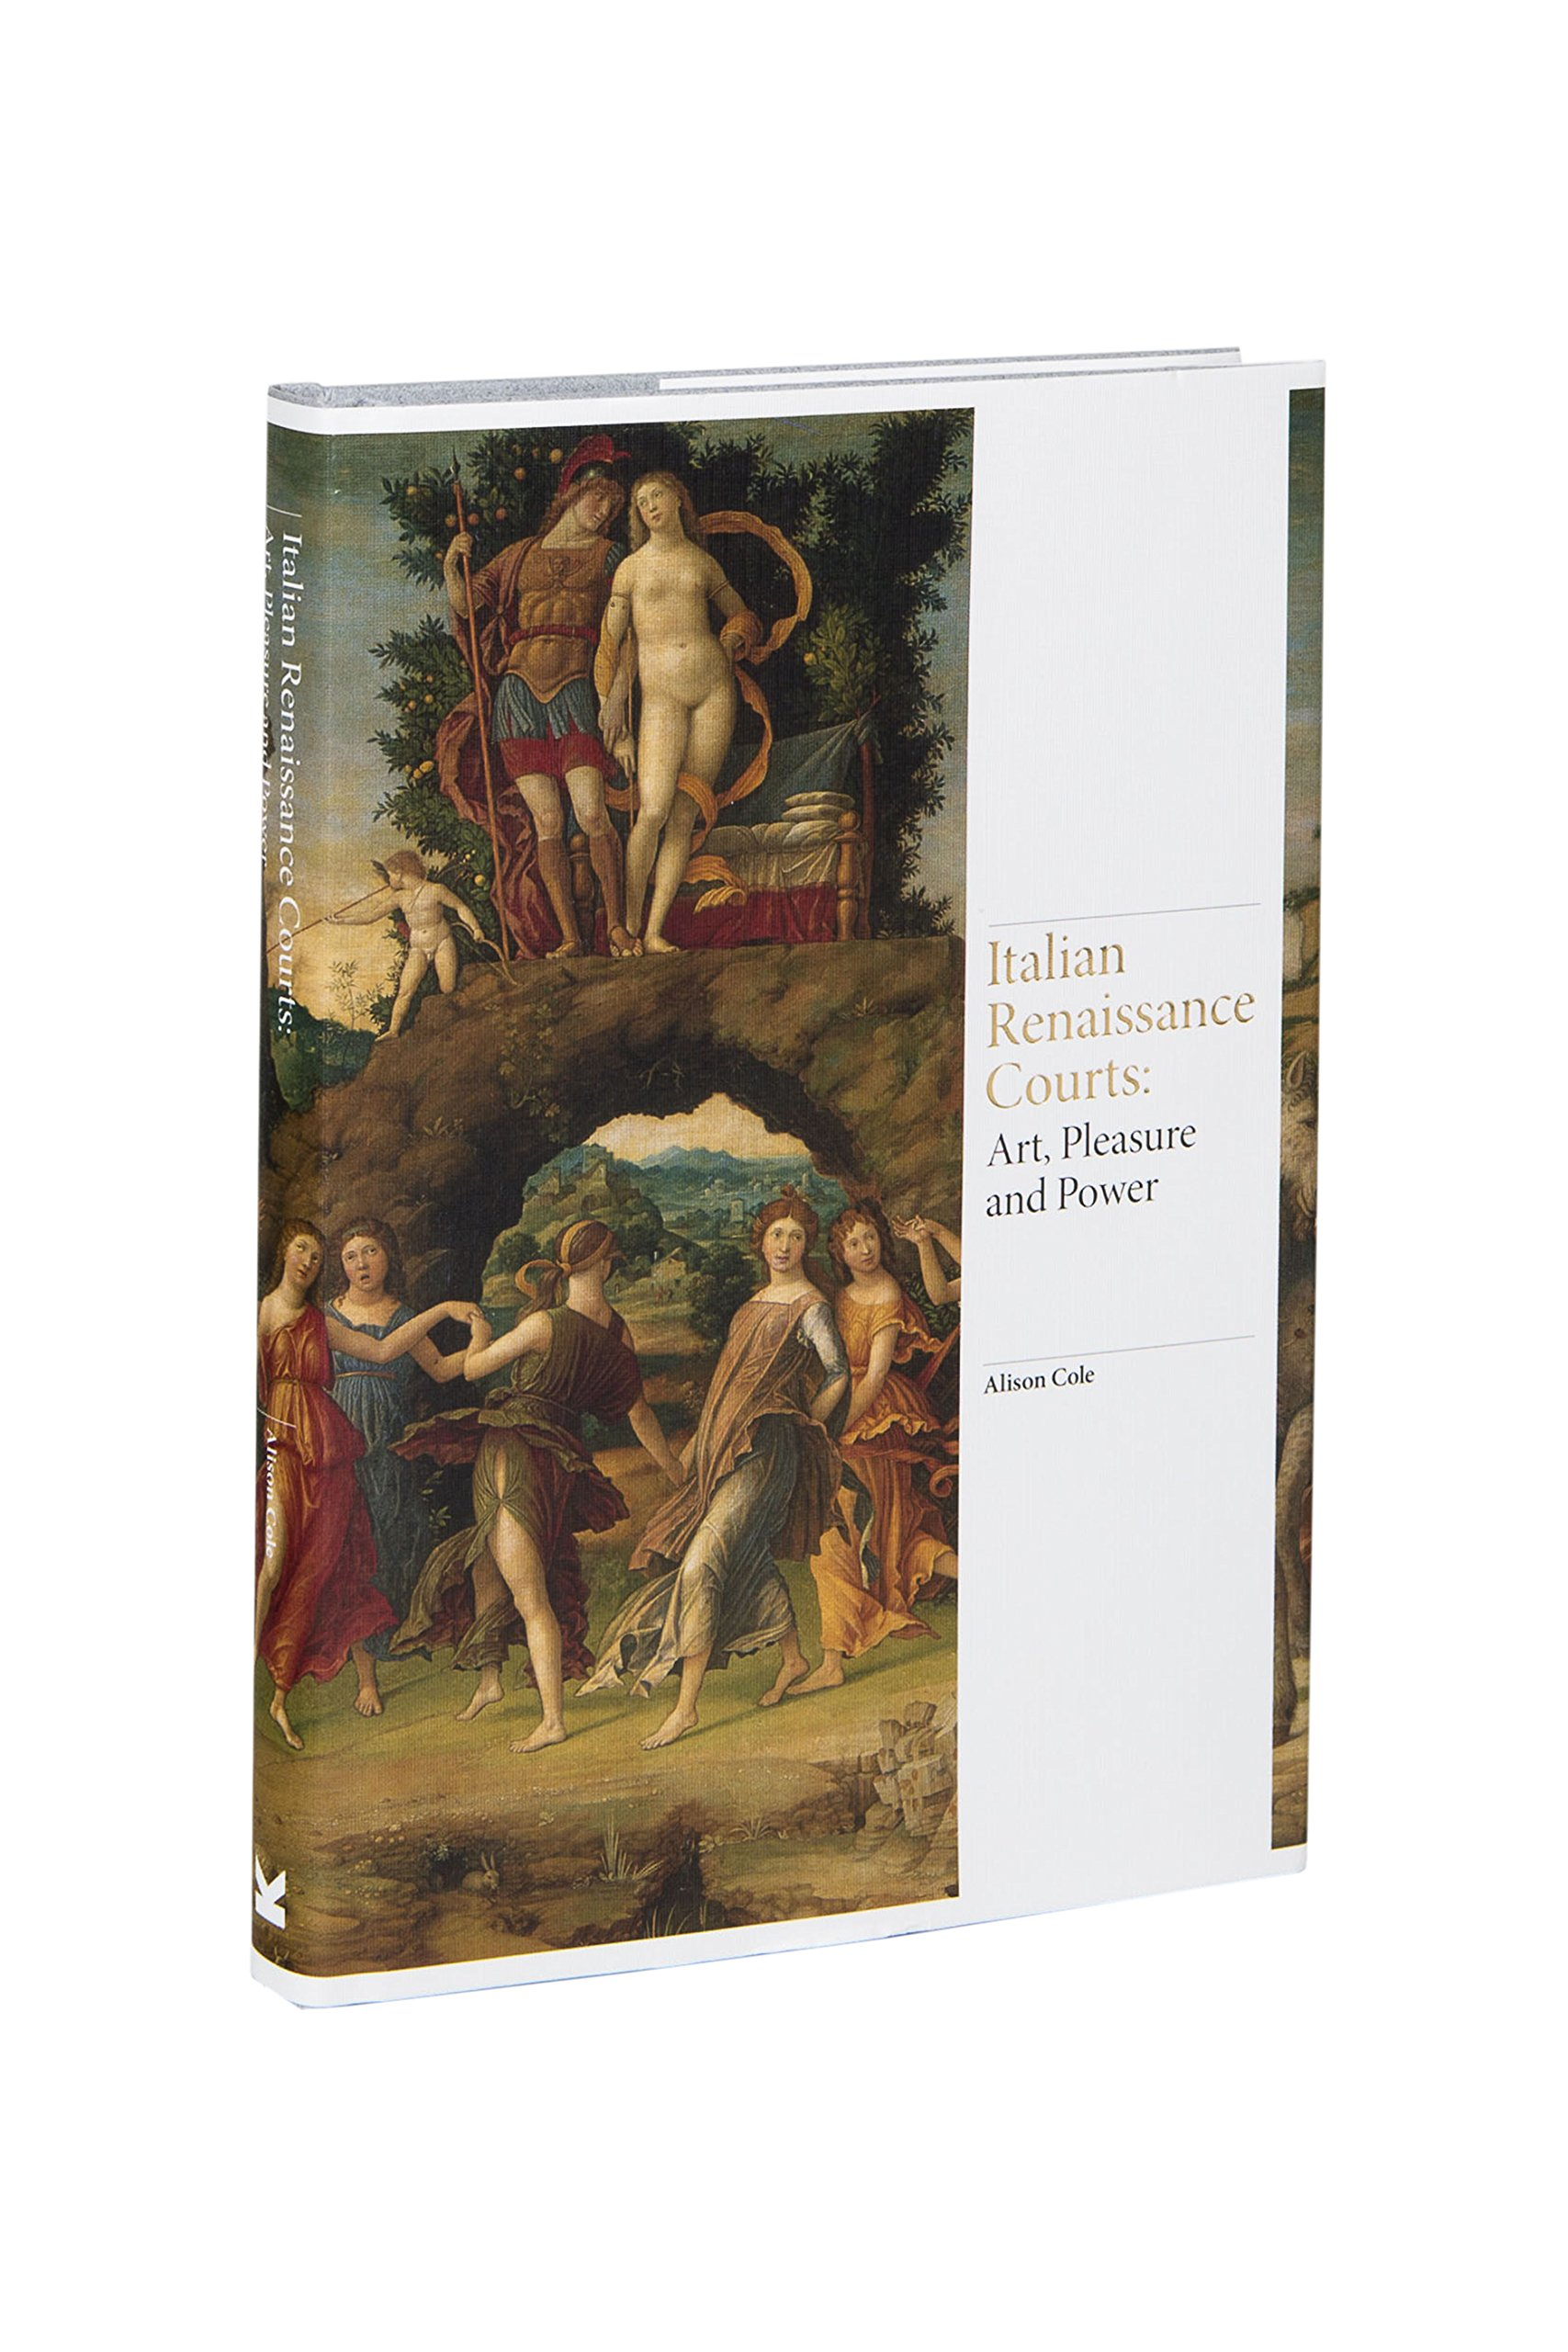 compare and contrast northern renaissance and italian renaissance art View test prep - exam 1 from arthc 202 at byu 1 compare and contrast italian renaissance art and northern renaissance art, (circa 1390 1520) in terms of style, cultural context and meaning.